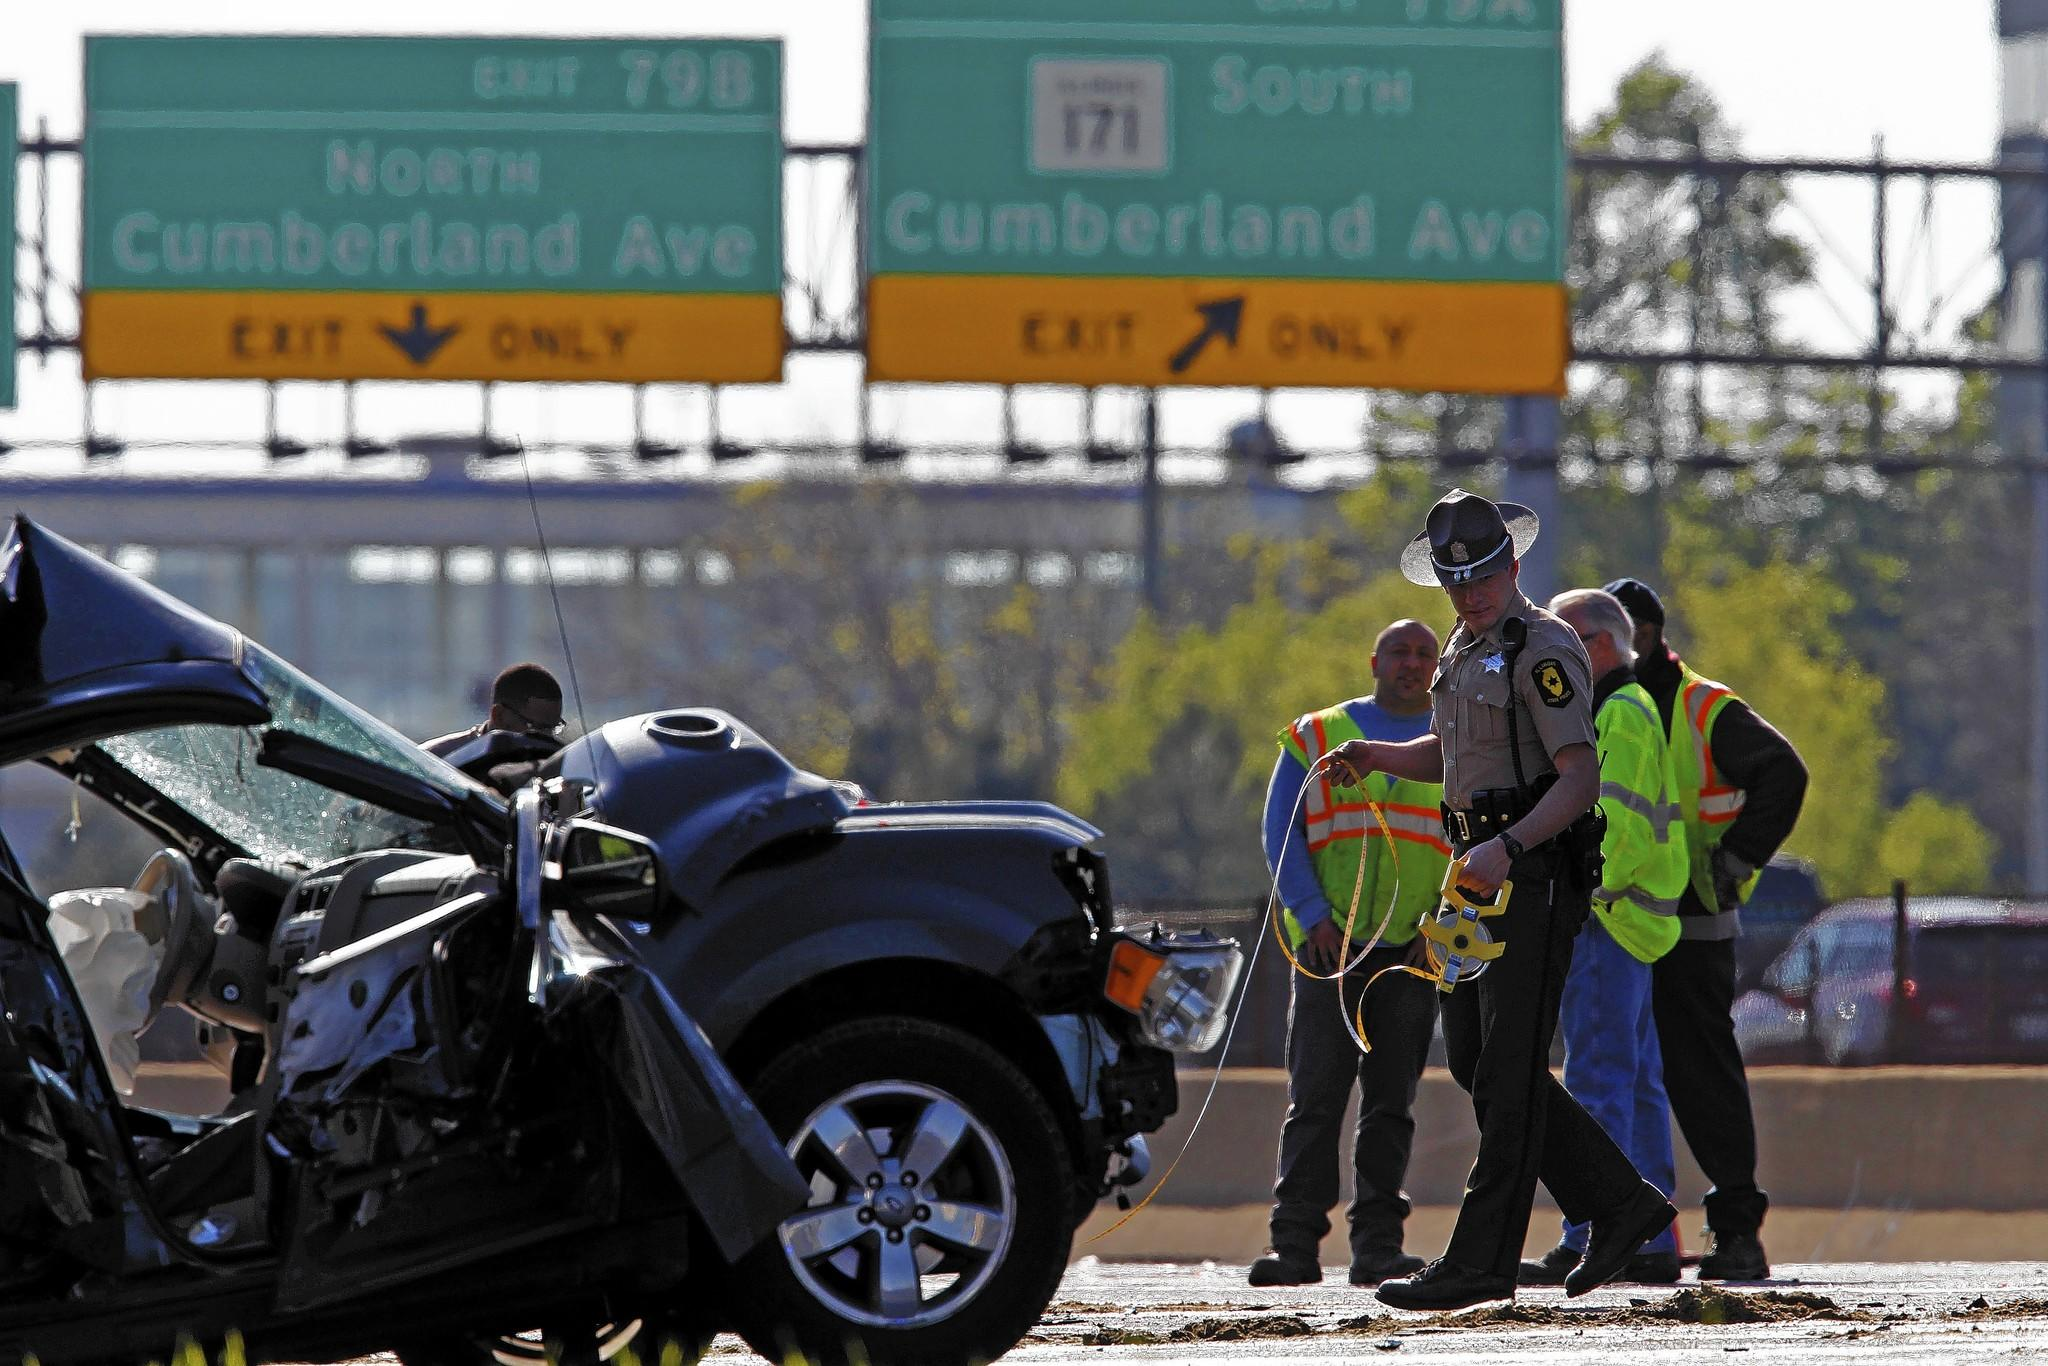 One of Illinois' vehicle fatalities in 2013 was in a multiple-vehicle accident on the outbound Kennedy Expressway near Cumberland Avenue on May 13.